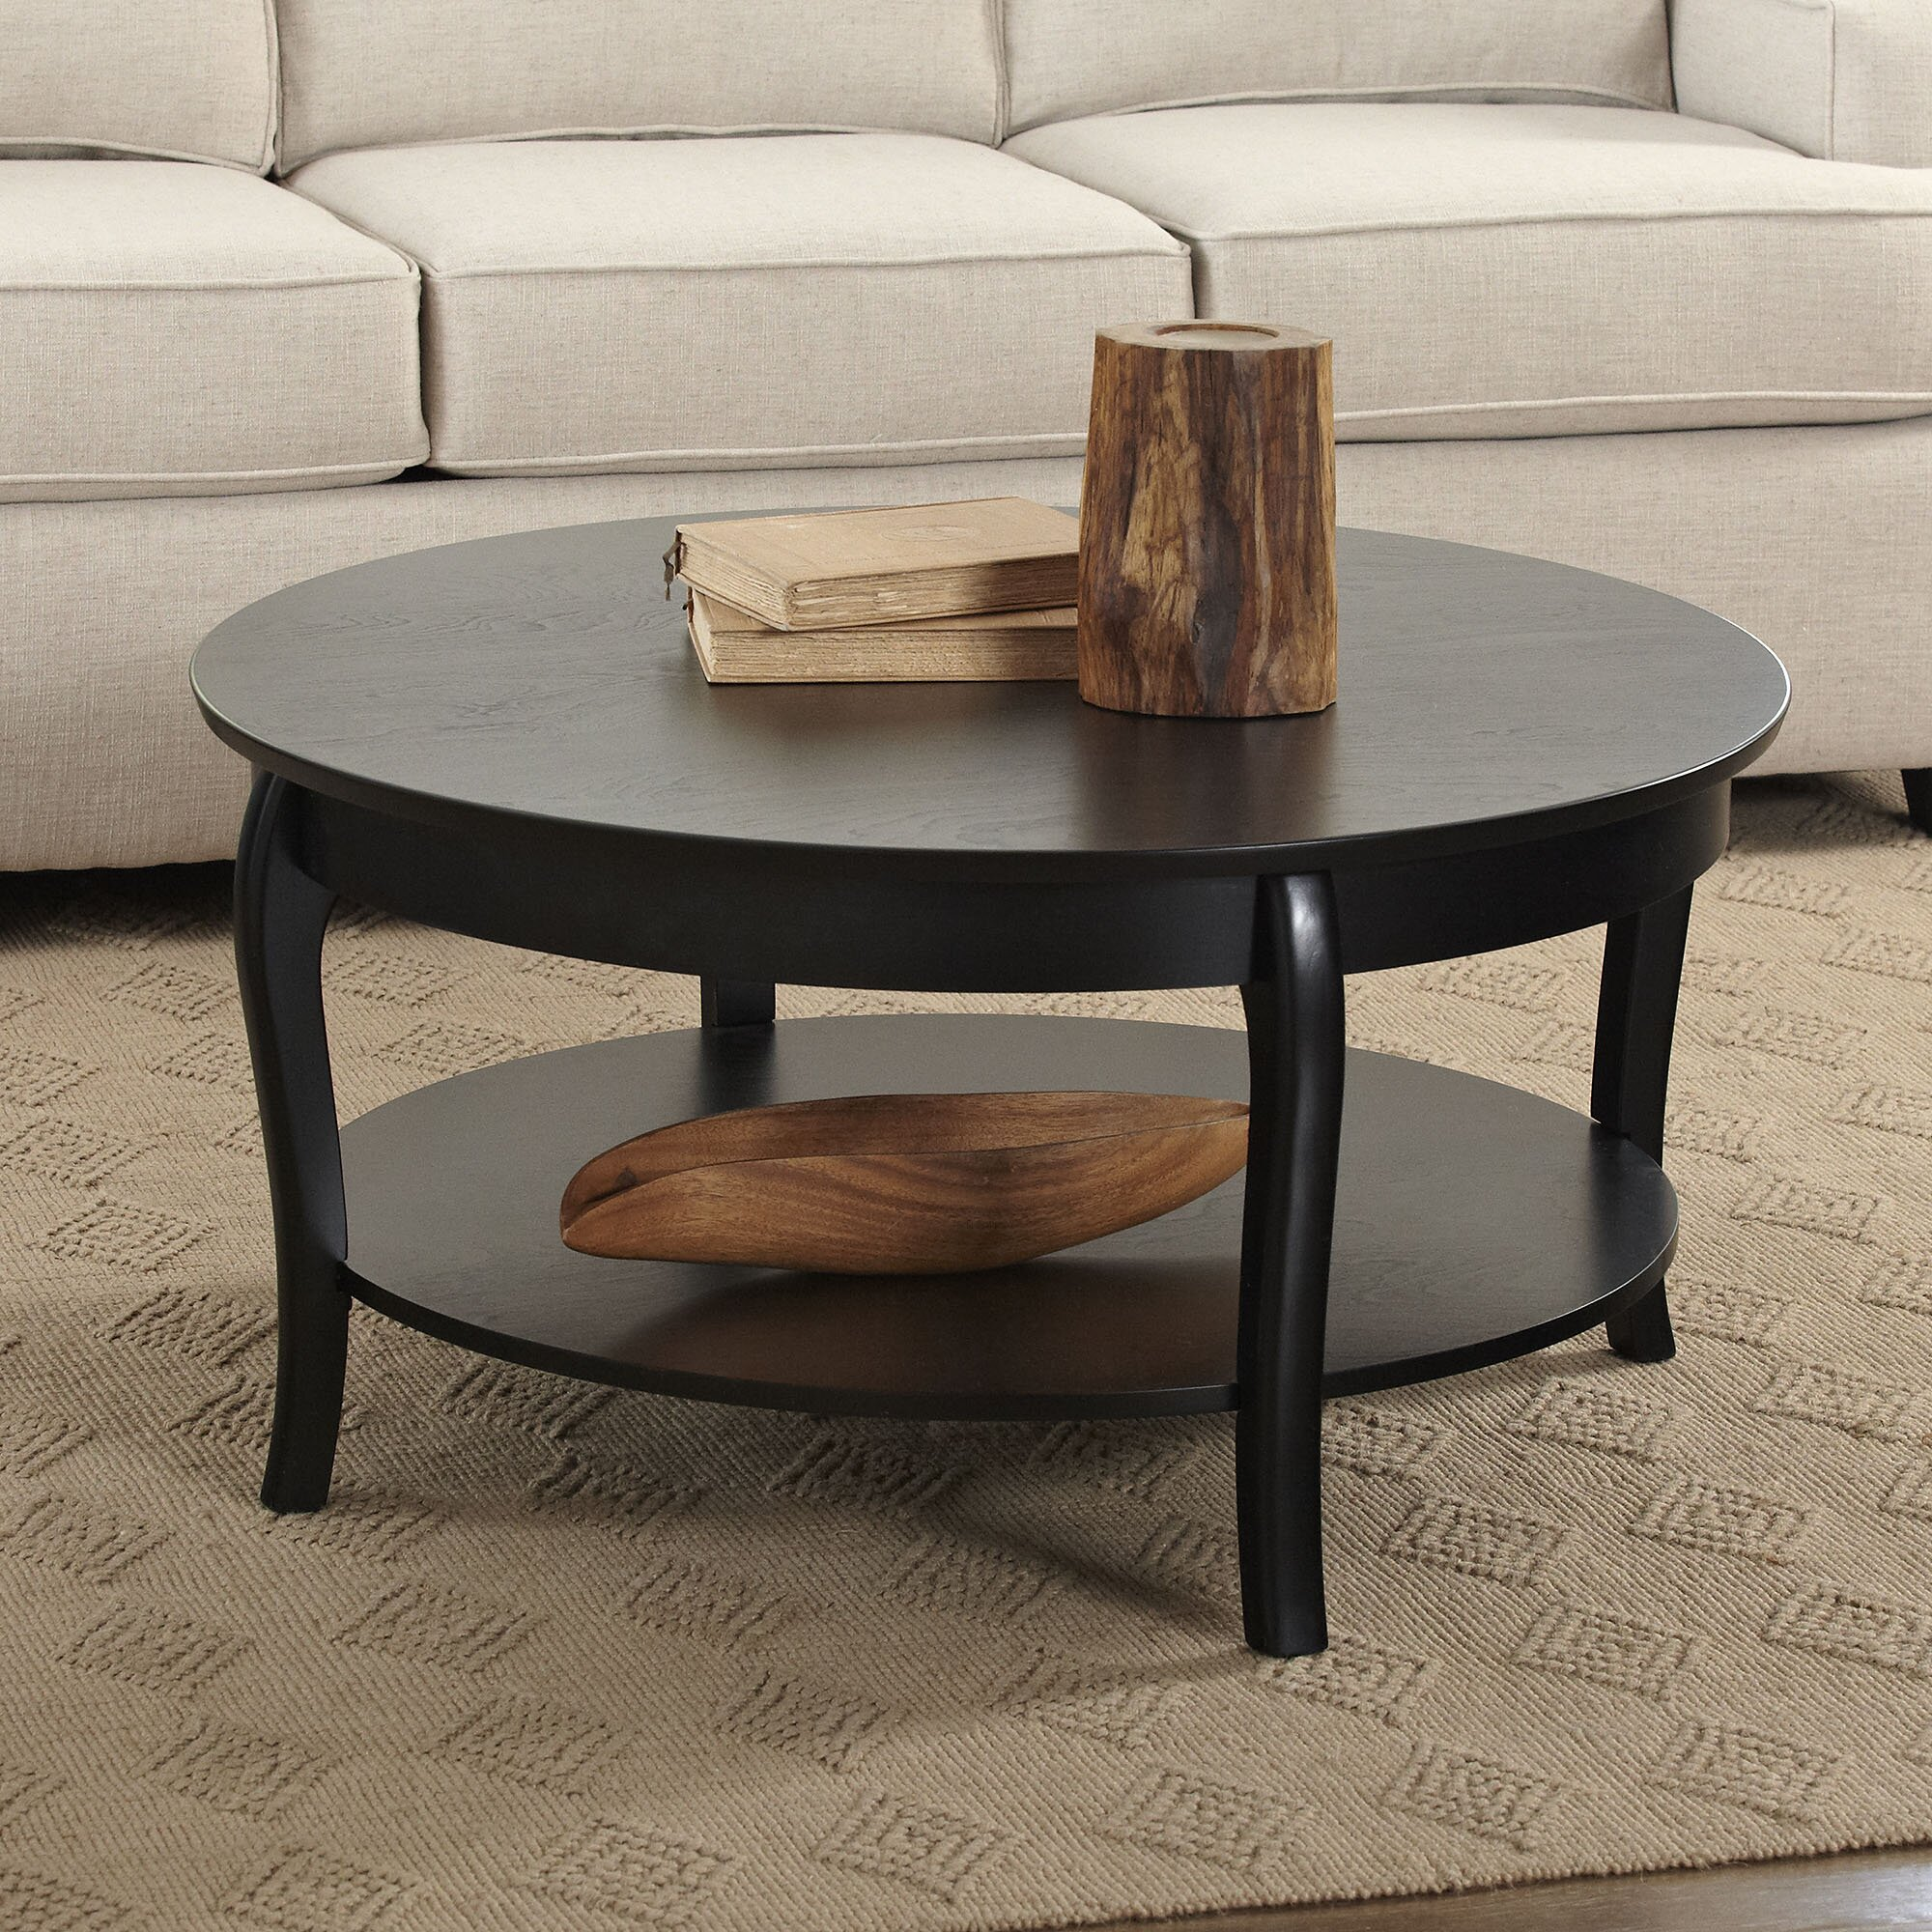 Scrolled metal and wood coffee table - Alberts Round Coffee Table